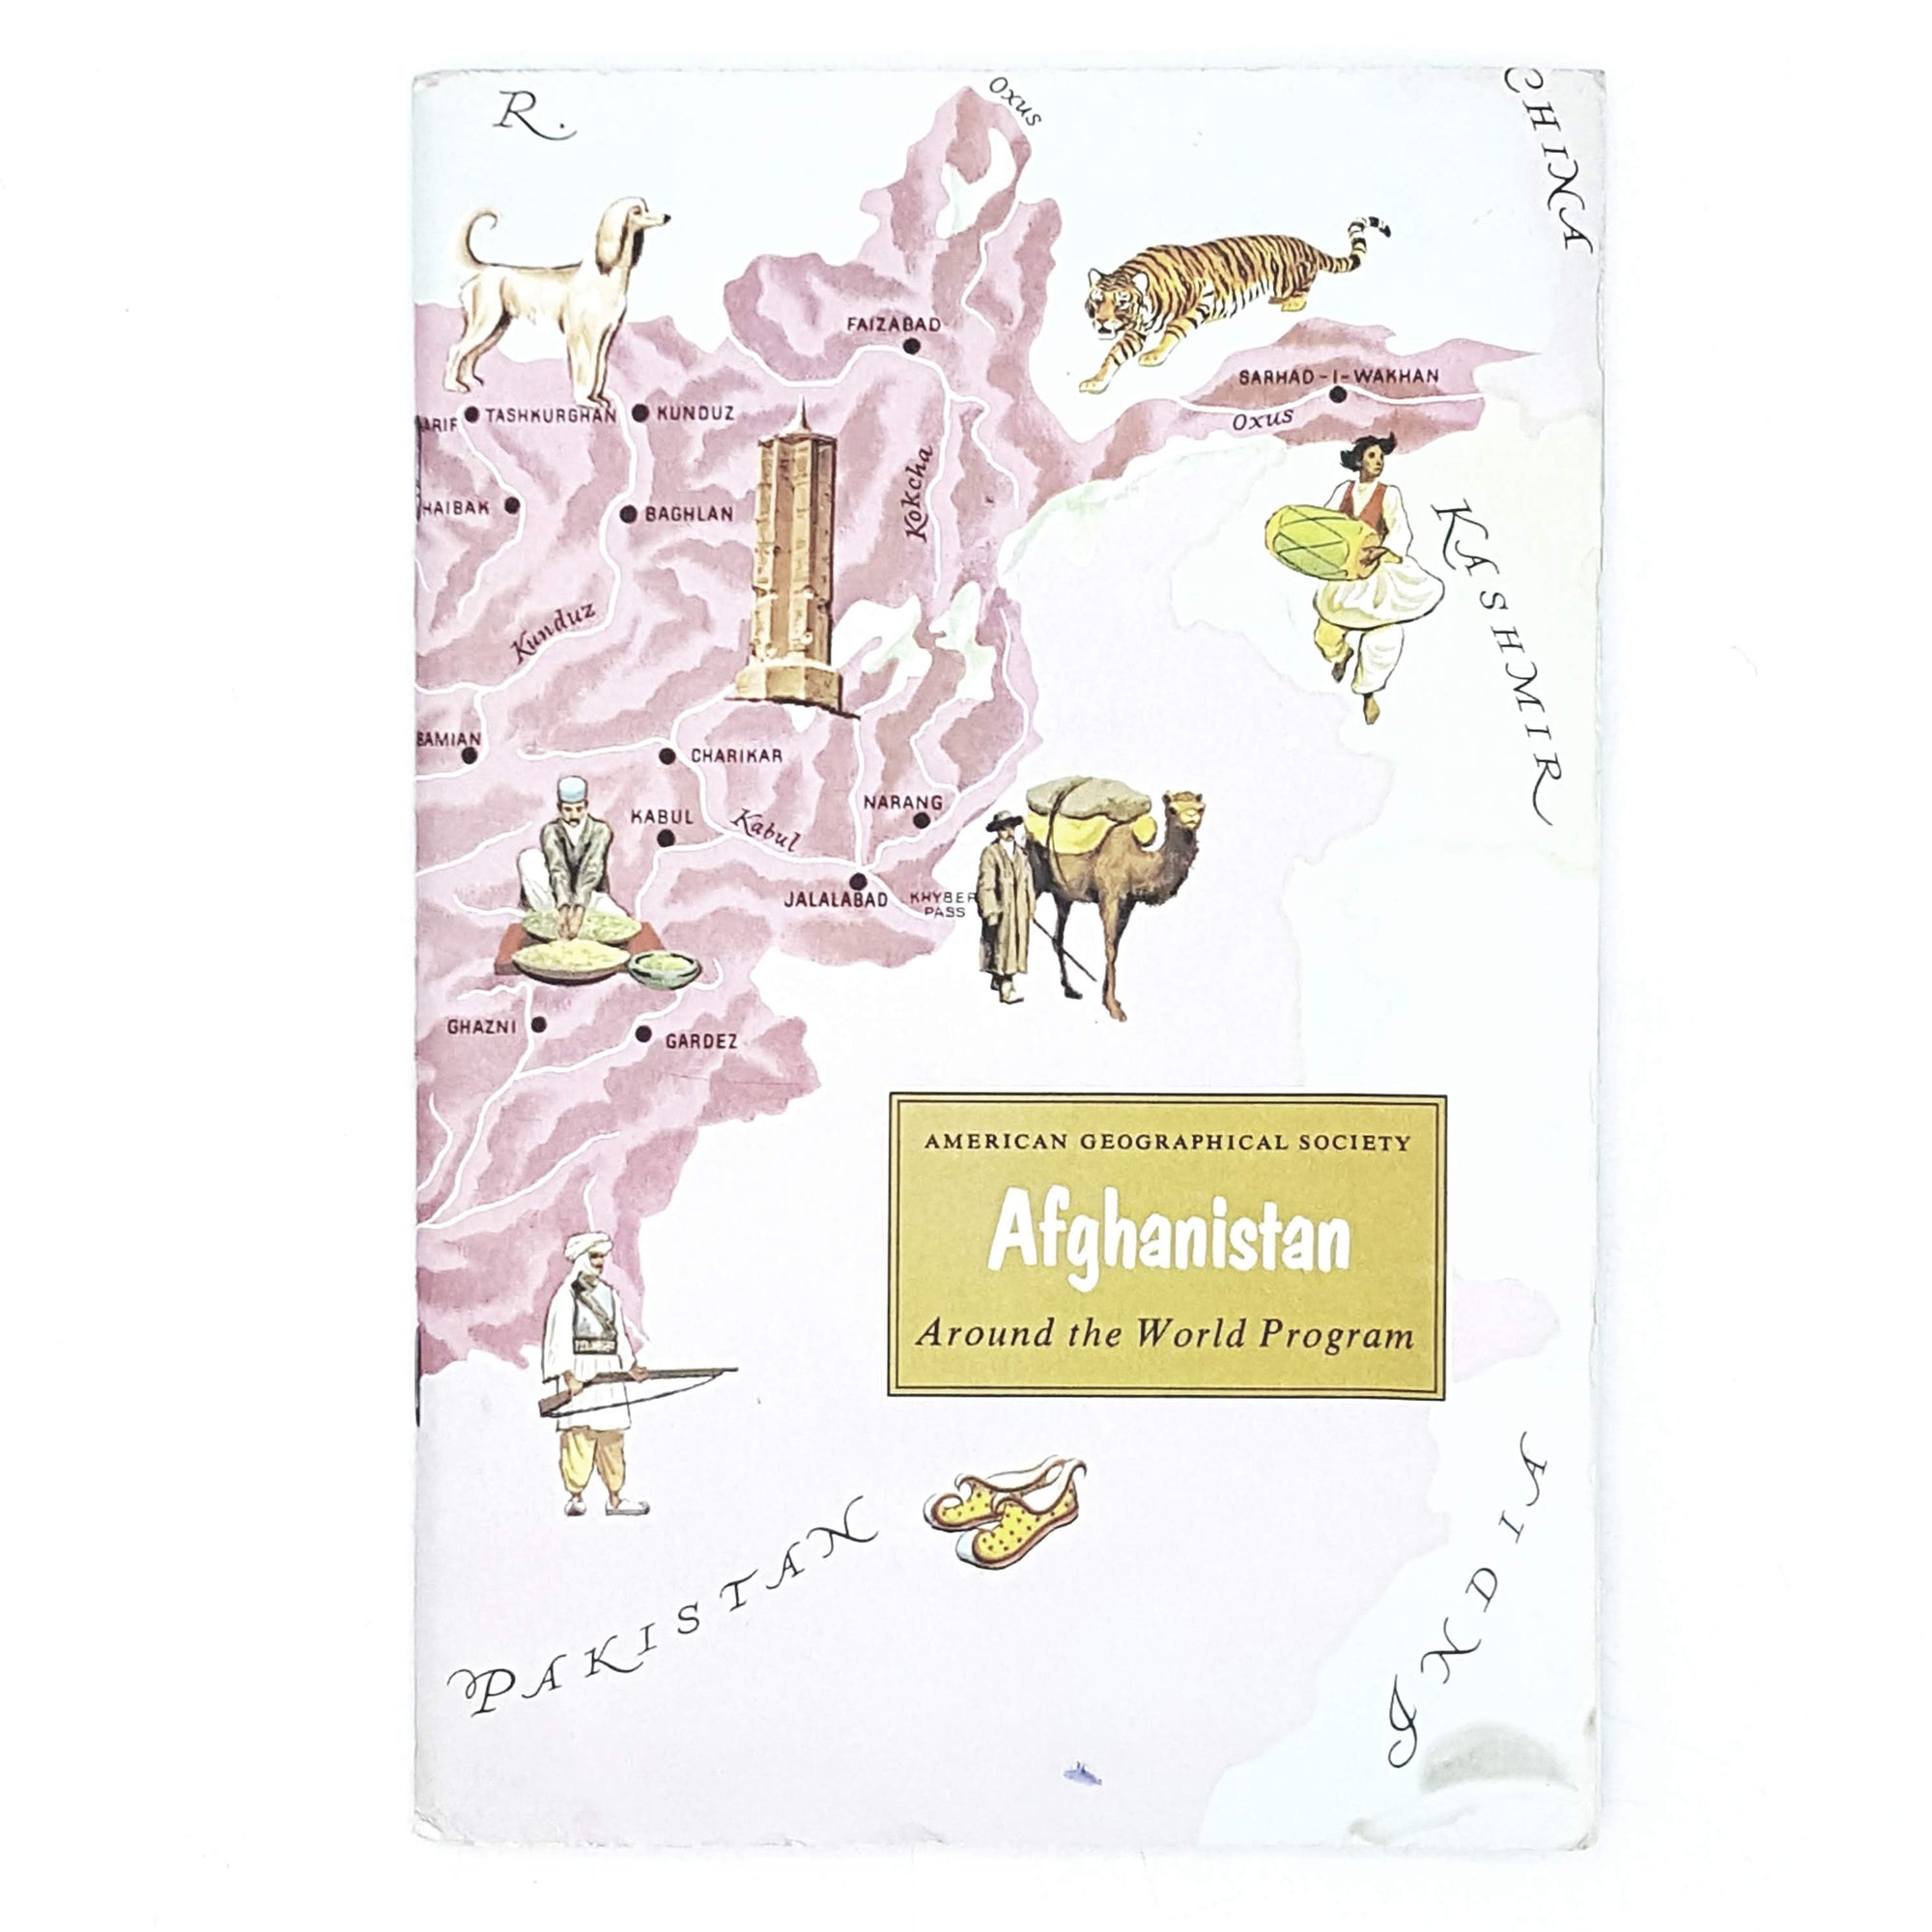 Vintage Travel: Afghanistan by Patricia and Robert C. Kingsbury 1965